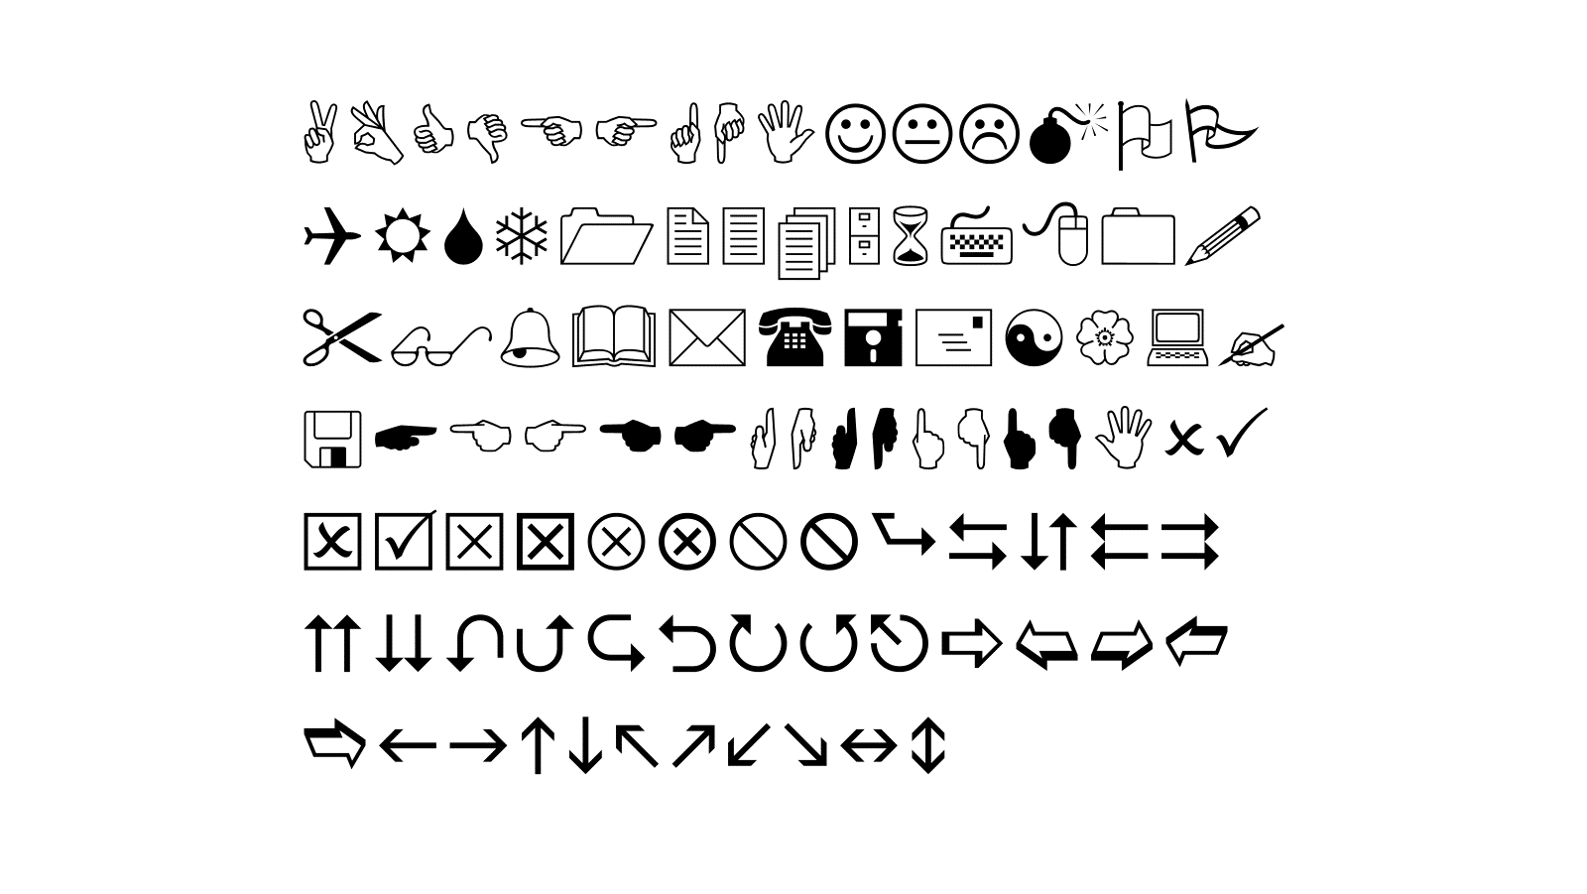 Varied symbols including pointing hands, thumbs up, arrows, phone, floppy disk, scissors, flag, flower, bell and more.